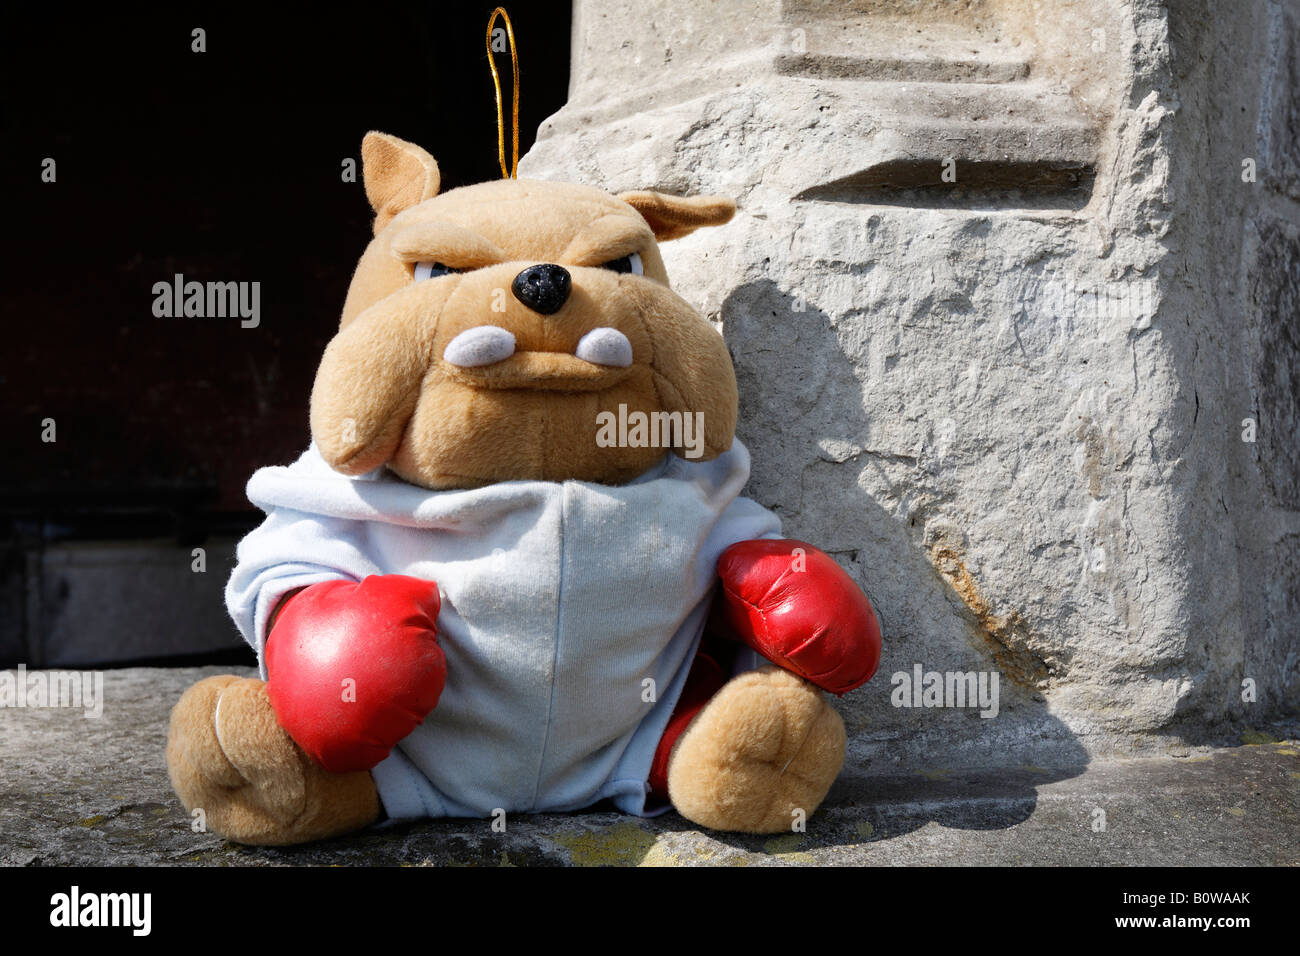 Stuffed Toy Bulldog Wearing Red Boxing Gloves Stock Photo Alamy